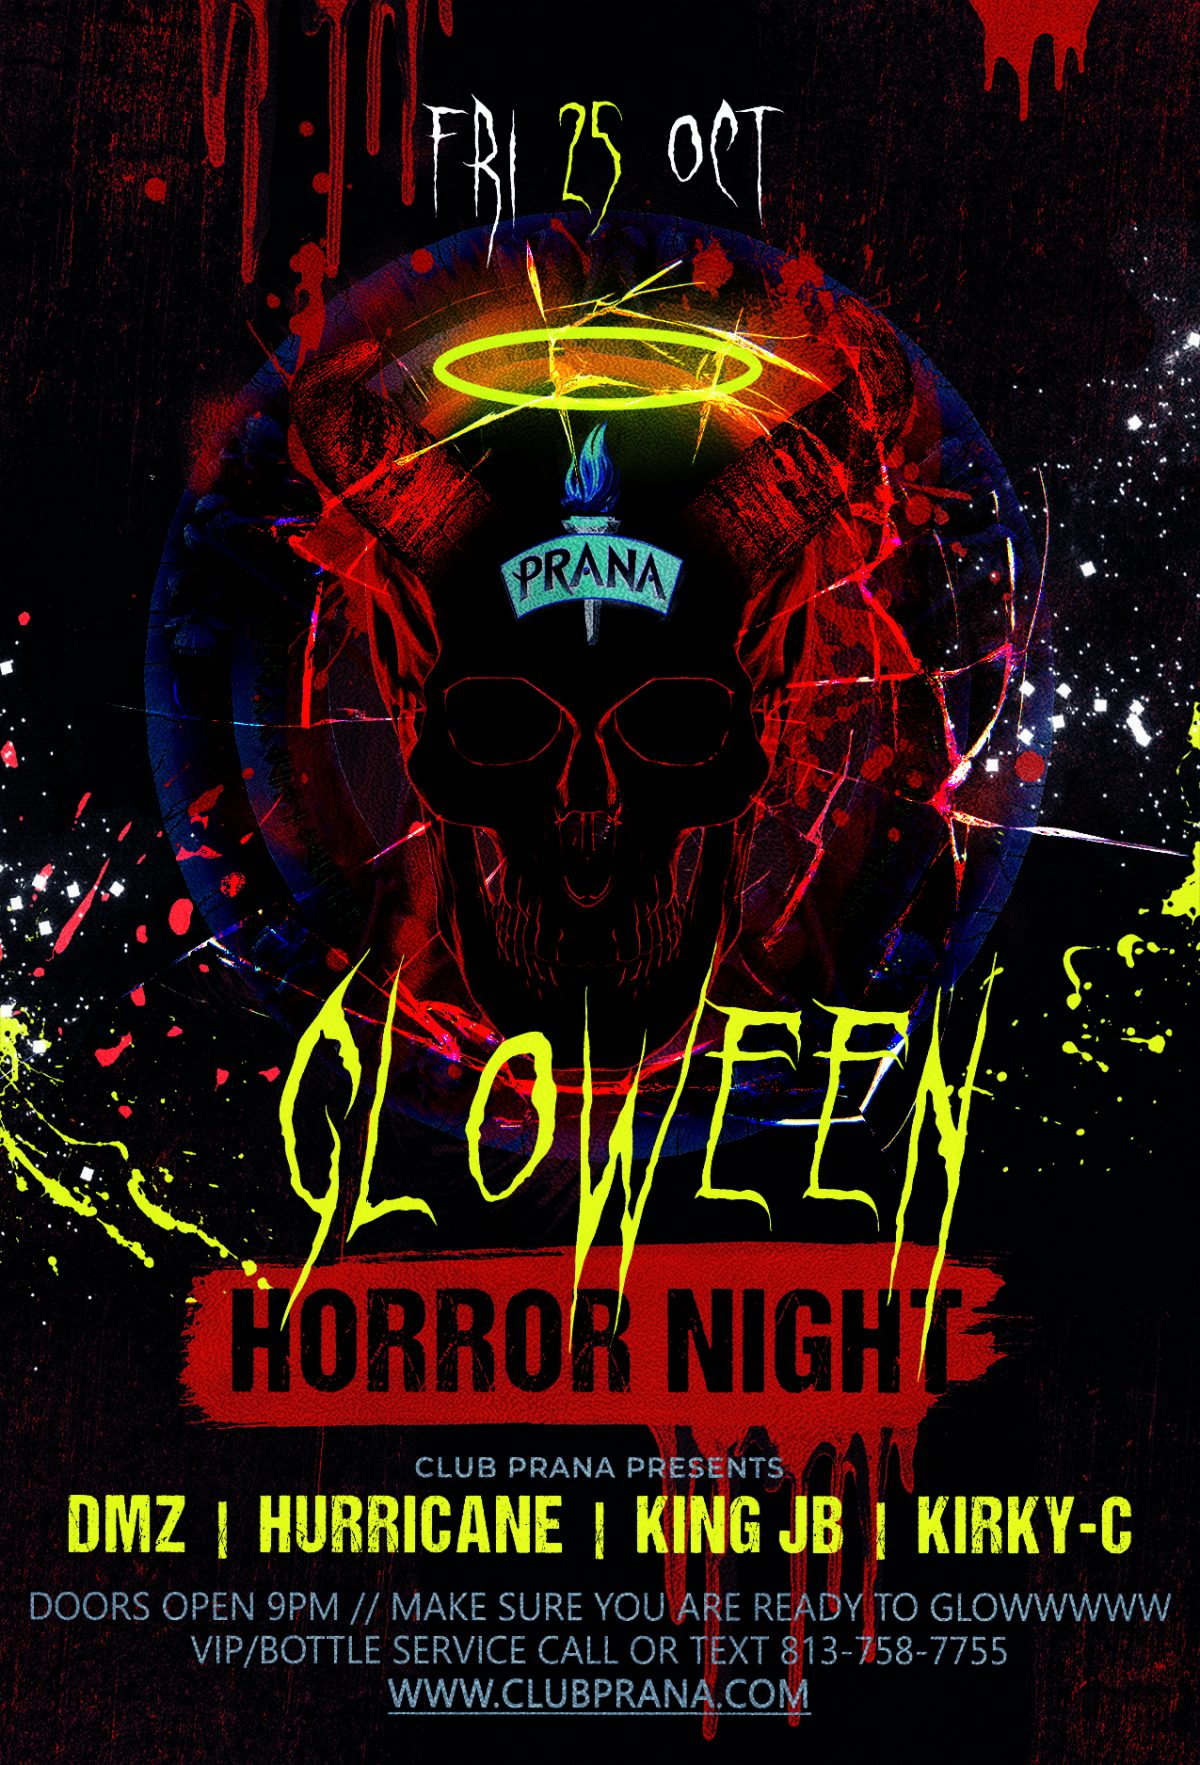 Gloween Horror Night